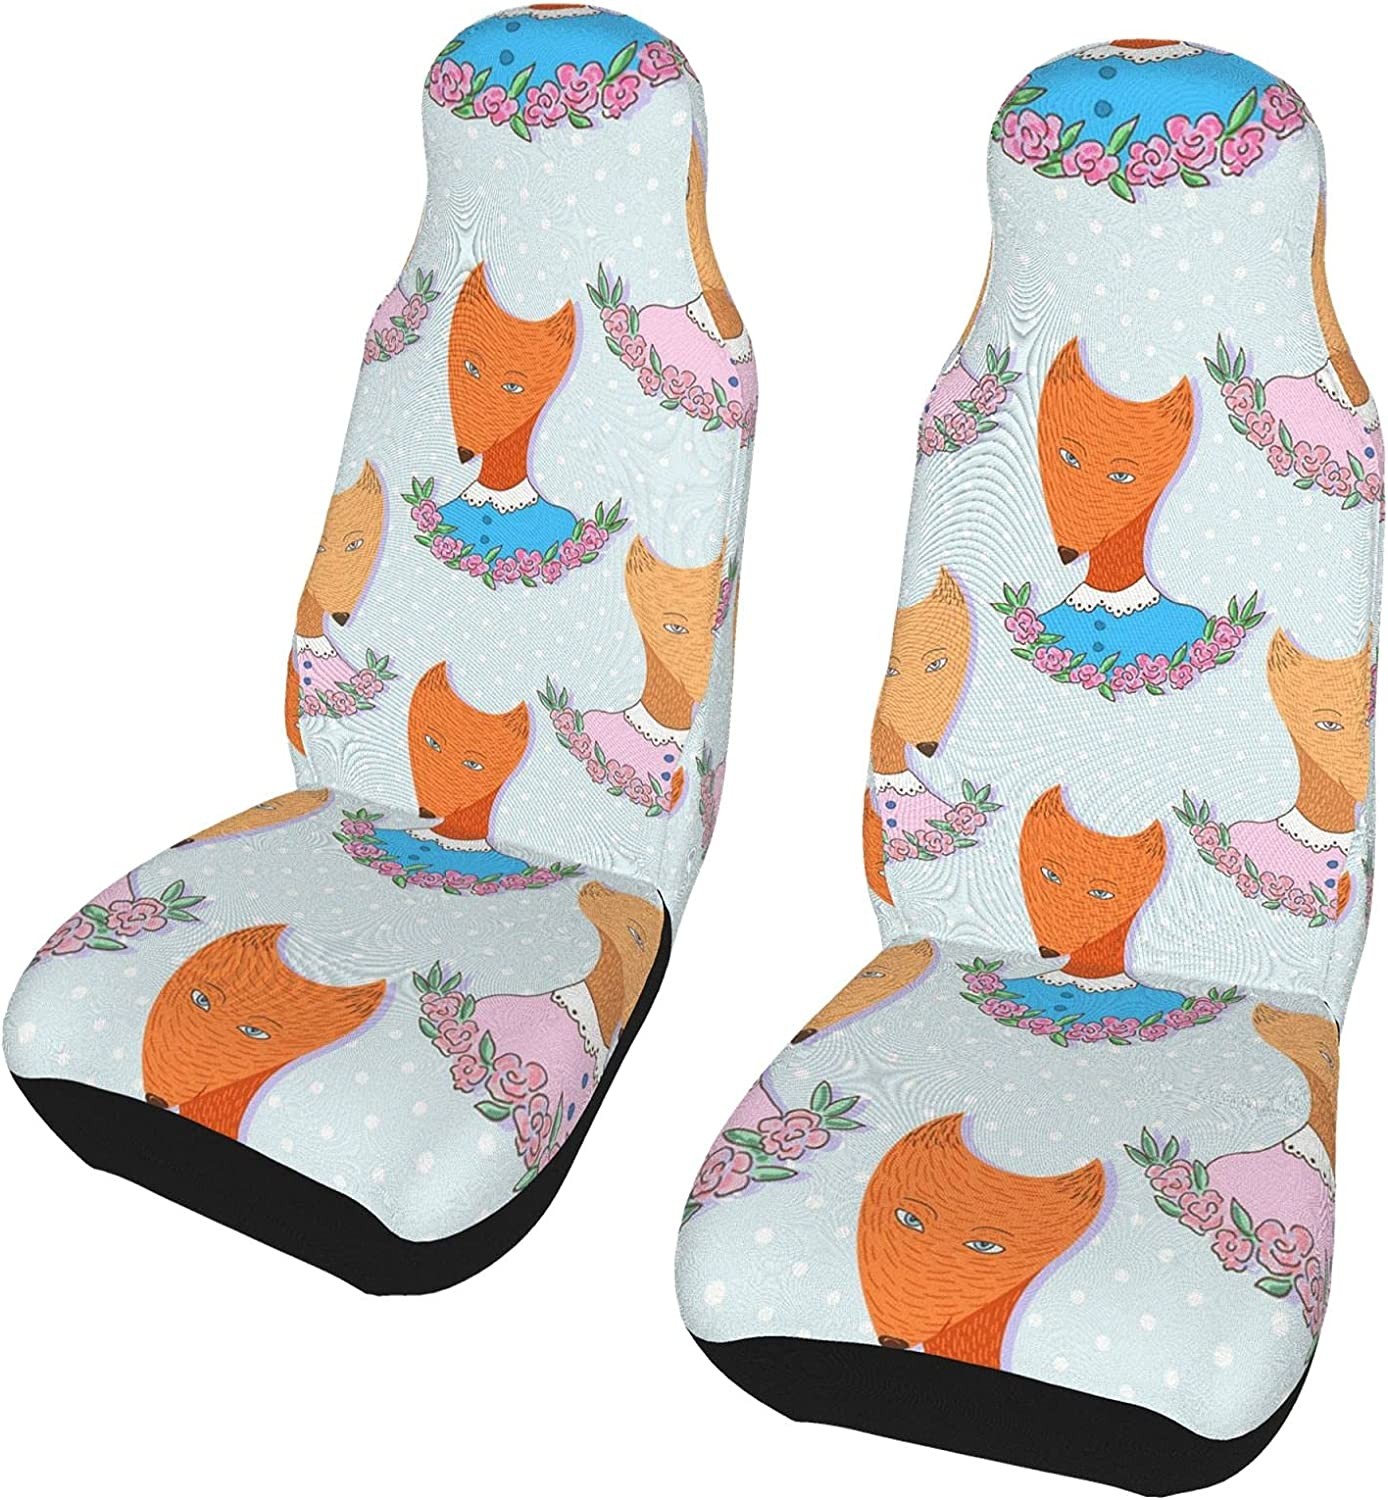 At the price of surprise REDDATES Special Campaign Cartoon Animals Car Seat Protecto Cover Seats Front